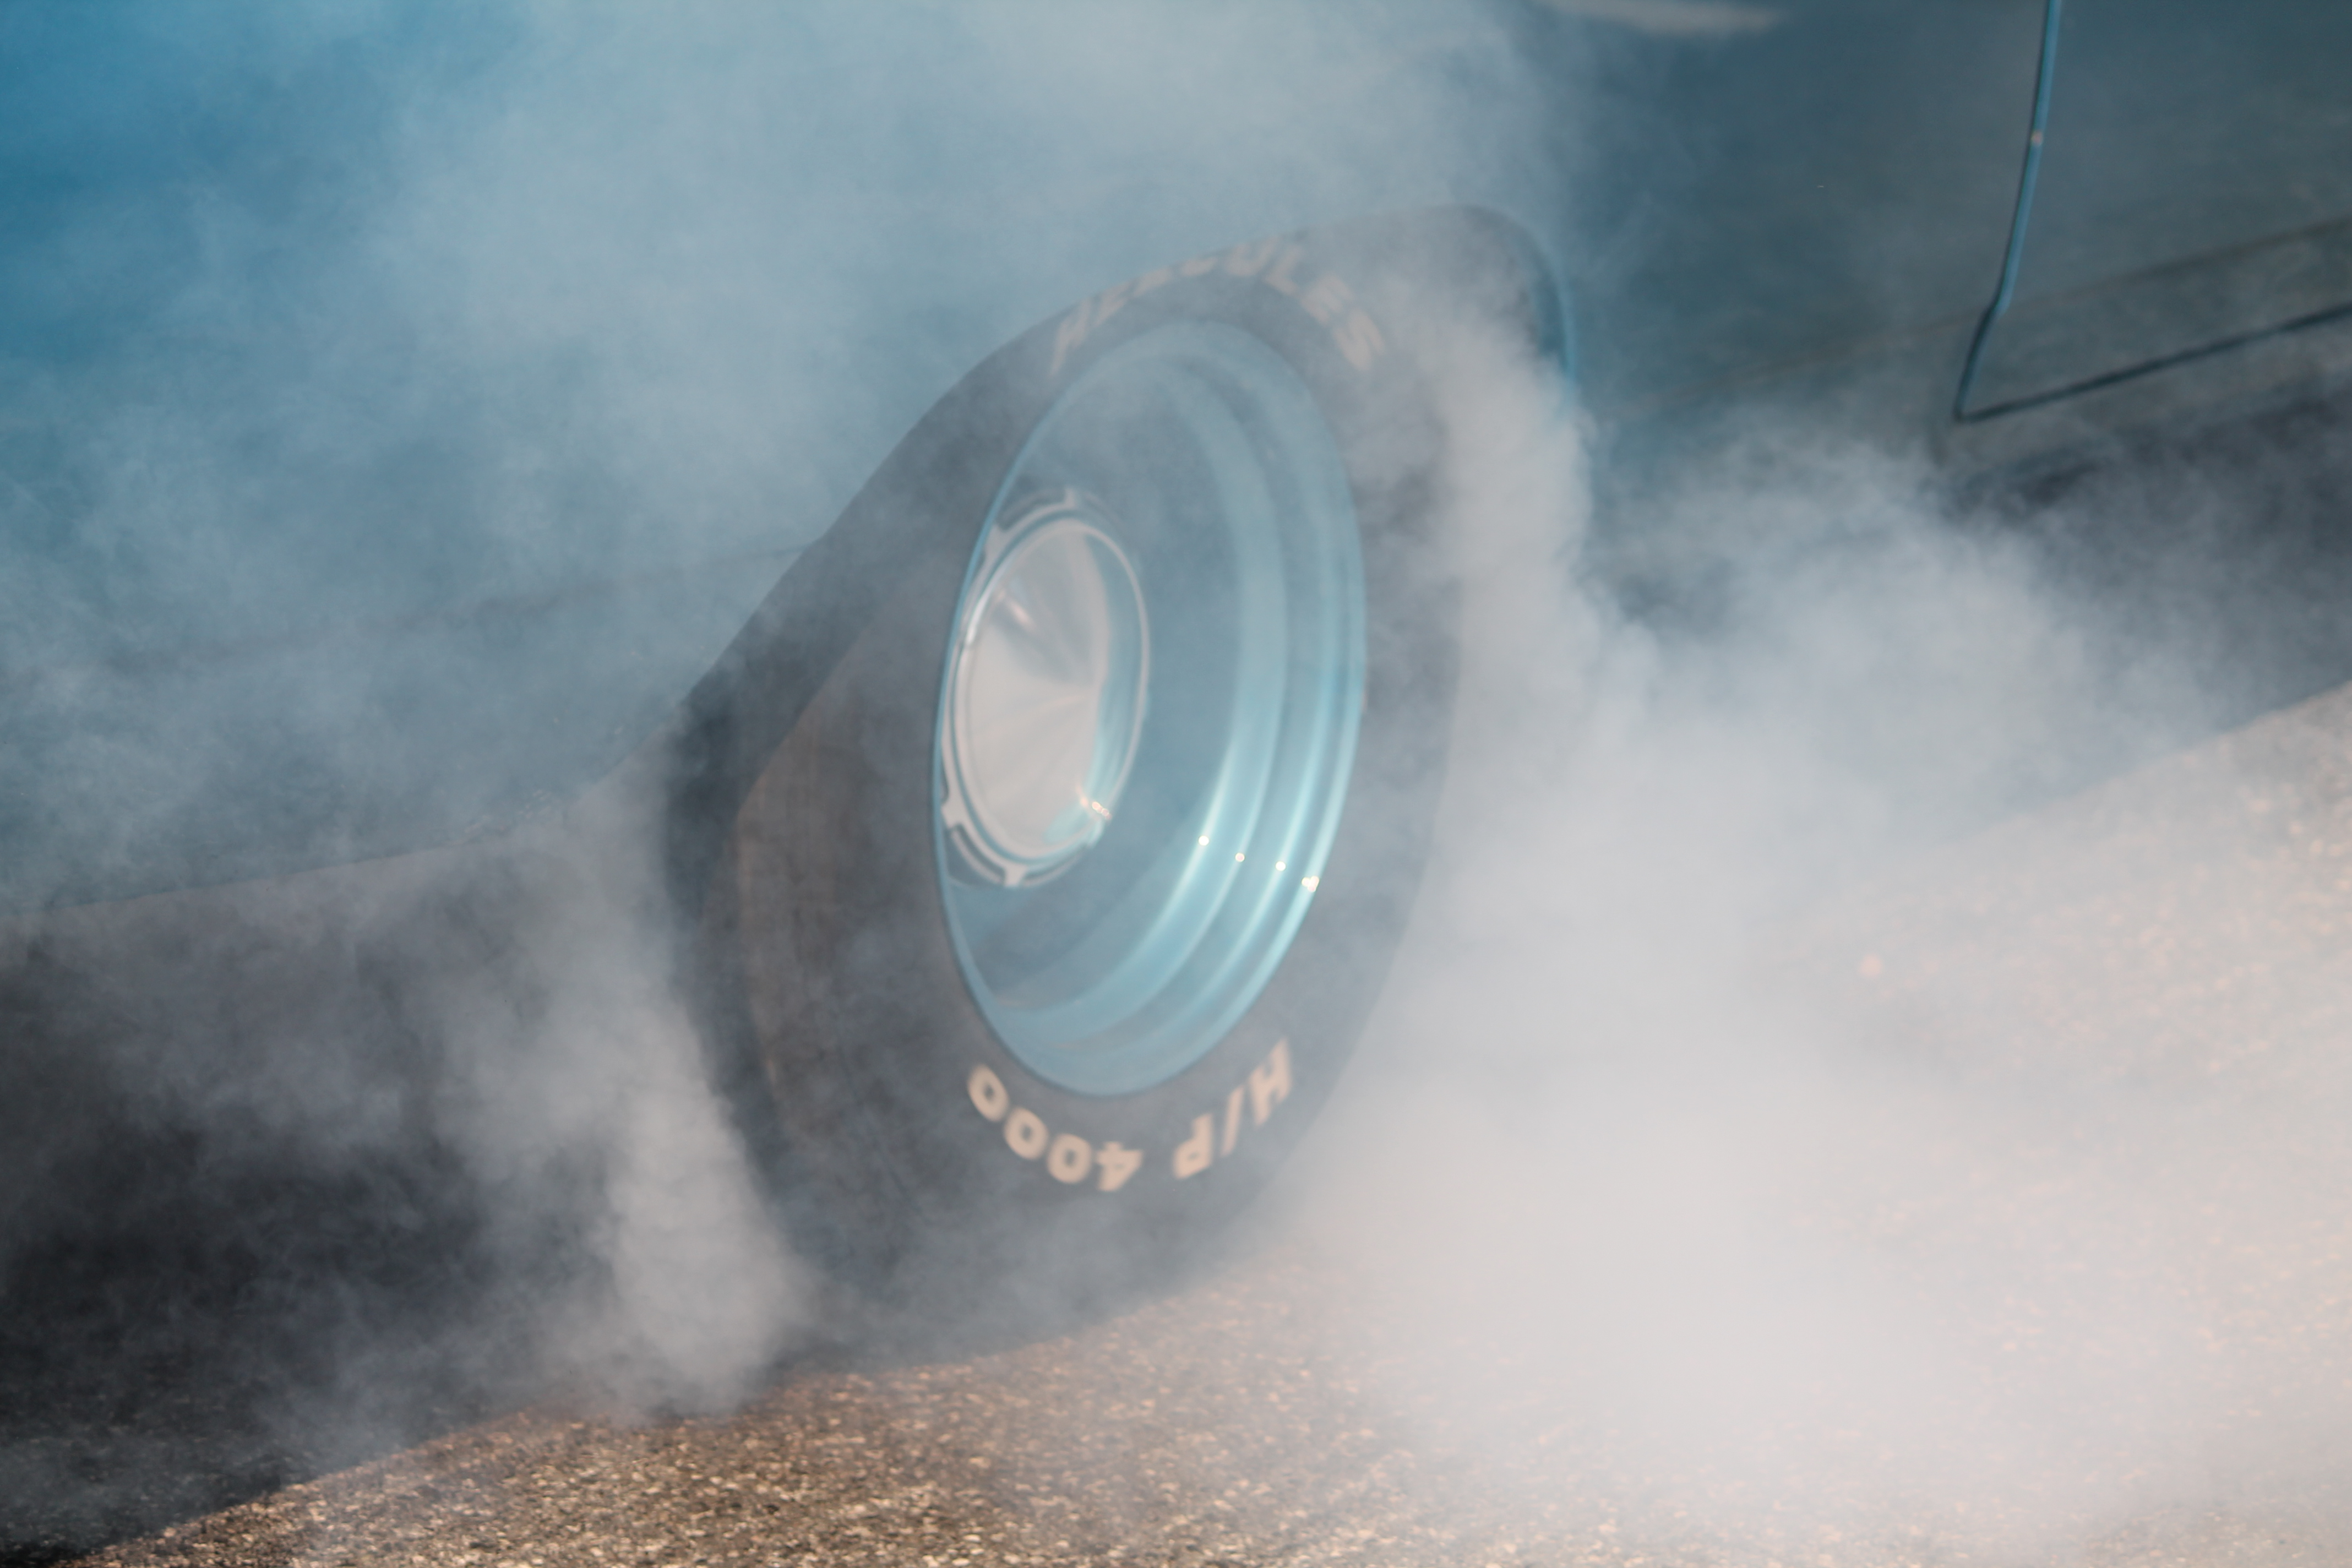 Burning rubber at the annual Turtel Ball Run & Meet event